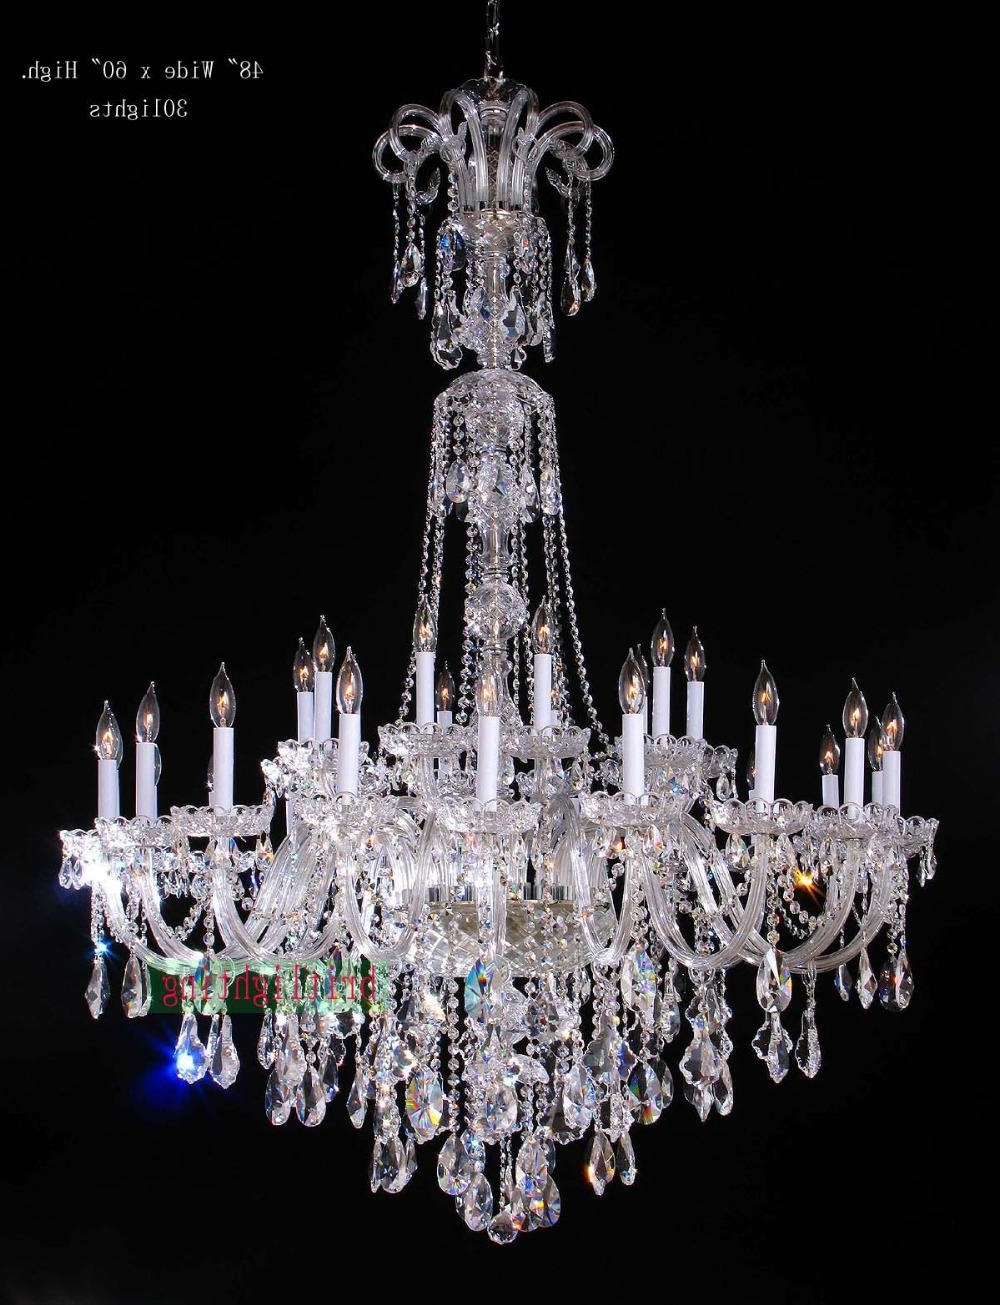 Best And Newest Big Crystal Chandelier In Lamp Modern Crystal Chandeliers 5 Star Hotel Chandelier Led Crystal (View 1 of 15)